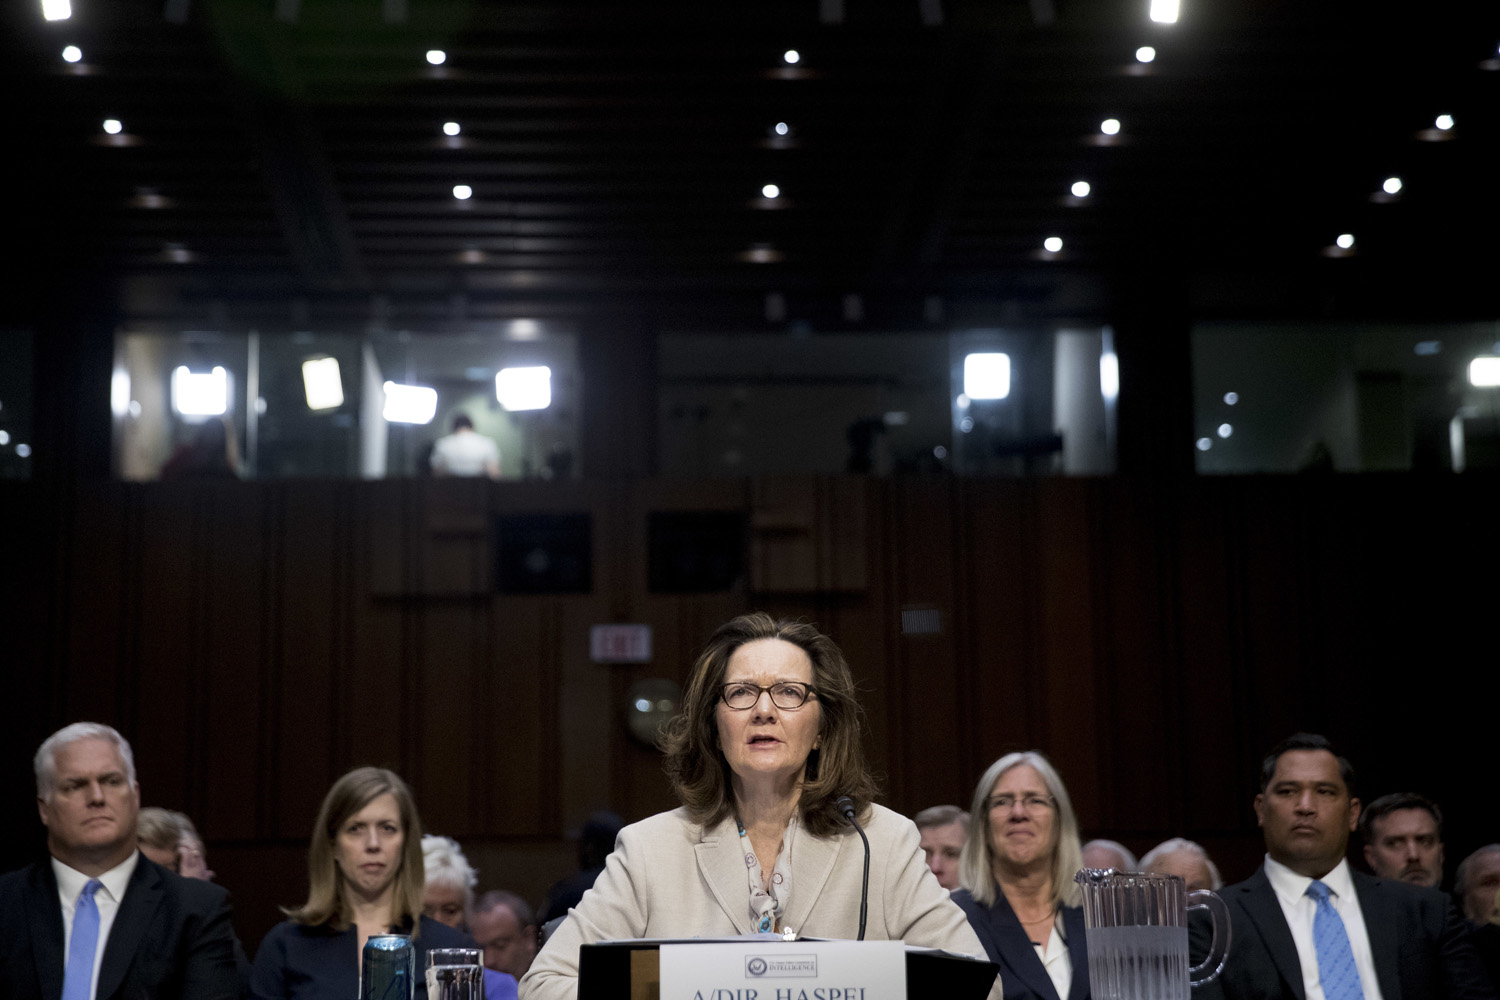 Gina Haspel, President Donald Trump's pick to lead the Central Intelligence Agency, testifies at her confirmation hearing before the Senate Intelligence Committee, on Capitol Hill, Wednesday, May 9, 2018, in Washington. (Andrew Harnik/AP)